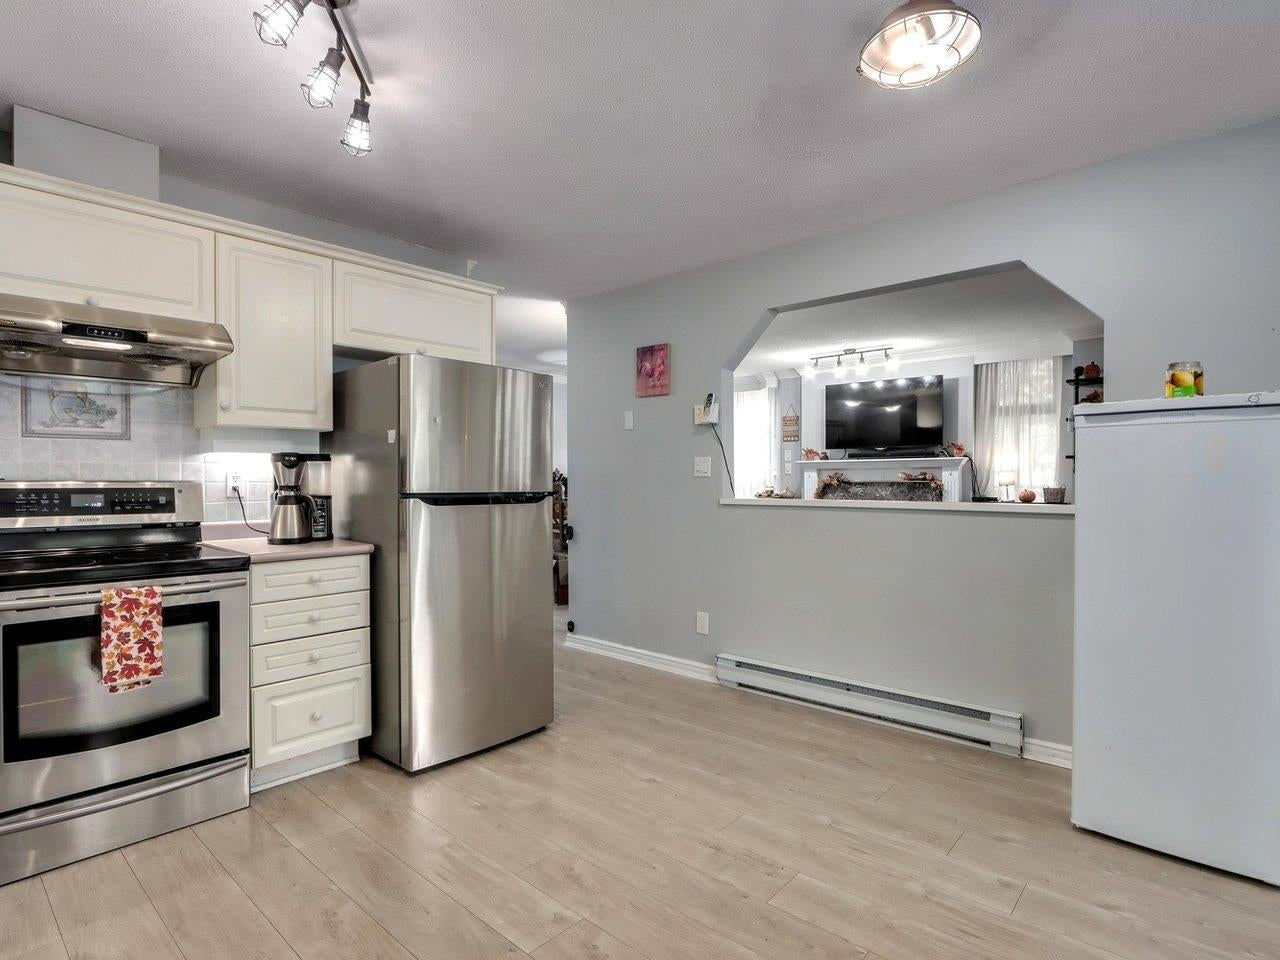 302 412 TWELFTH STREET - Uptown NW Apartment/Condo for sale, 2 Bedrooms (R2625659) - #10